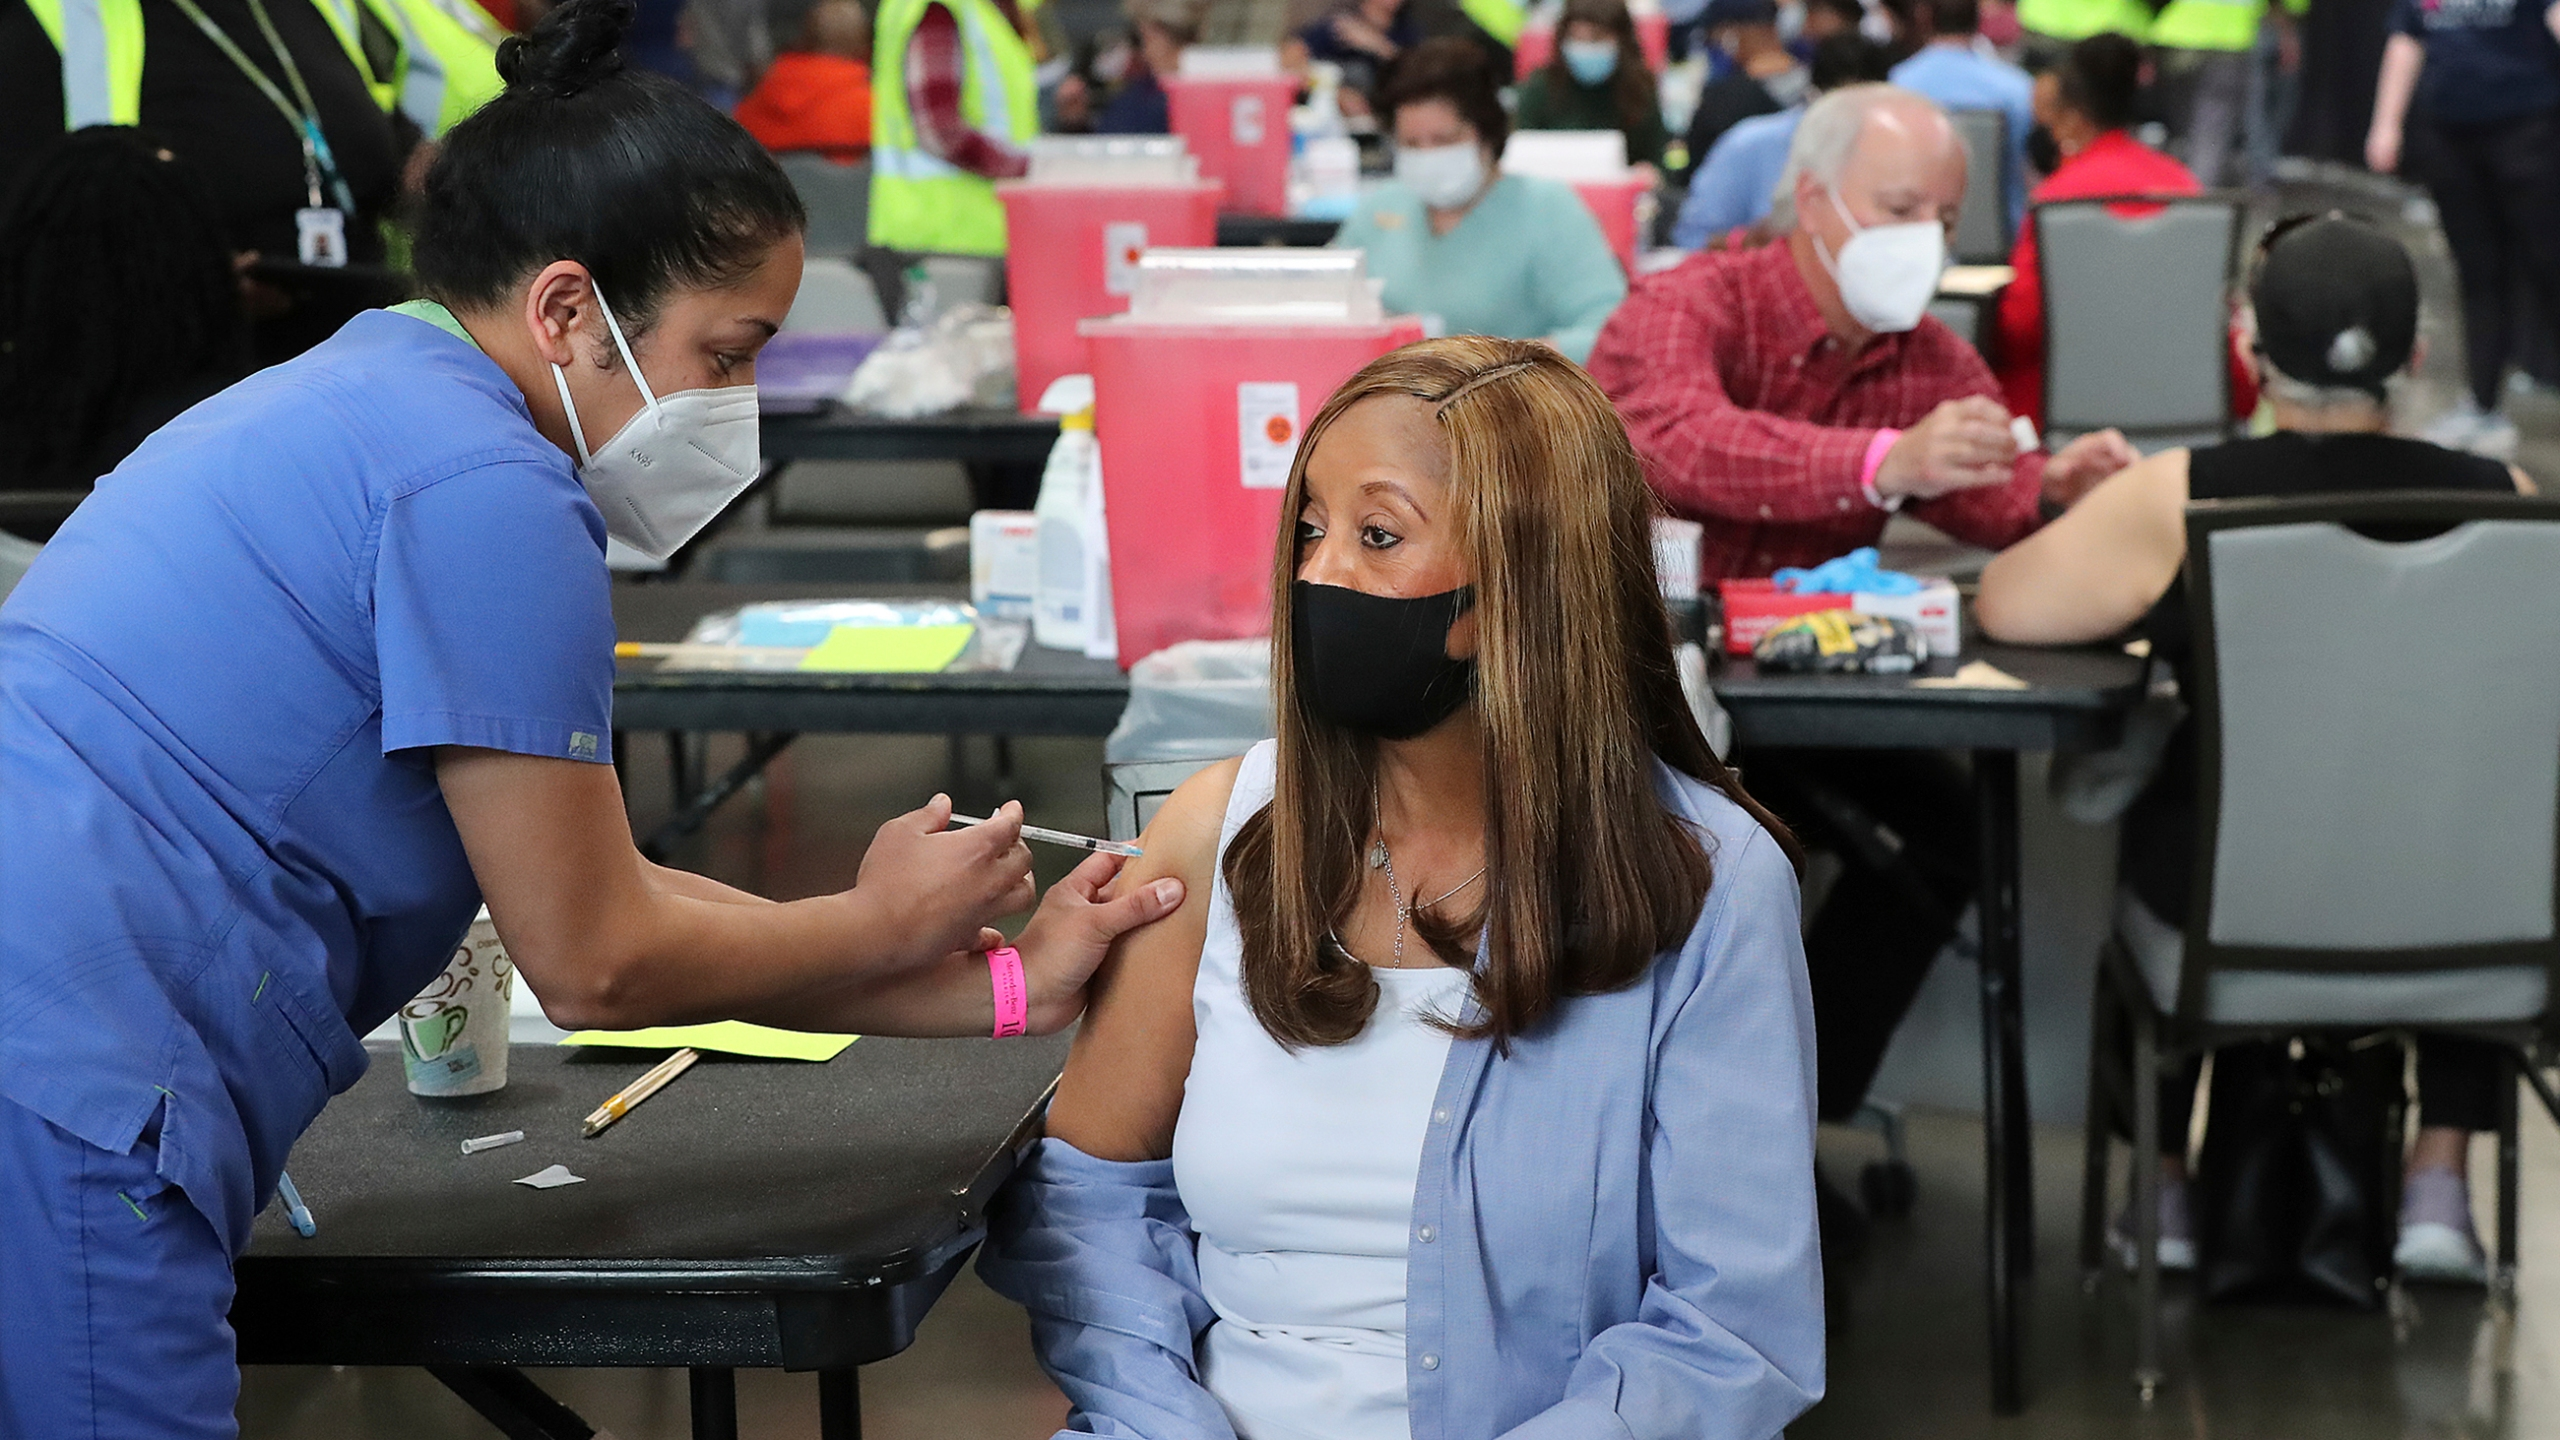 In this March 23, 2021, file photo, Anita Shetty, left, vaccinates Doris Lucas with a Pfizer vaccine in Atlanta. More than three months into the U.S. vaccination drive, many of the numbers paint an increasingly encouraging picture as dozens of states have thrown open vaccinations to all adults or are planning to do so in a matter of weeks. (Curtis Compton/Atlanta Journal-Constitution via AP, File)